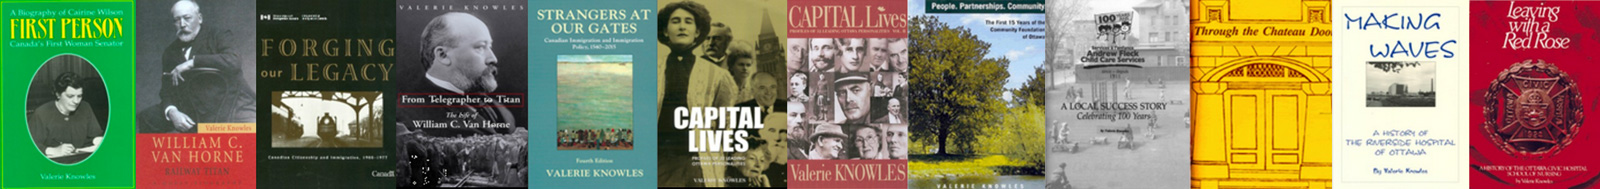 Valerie Knowles' Books